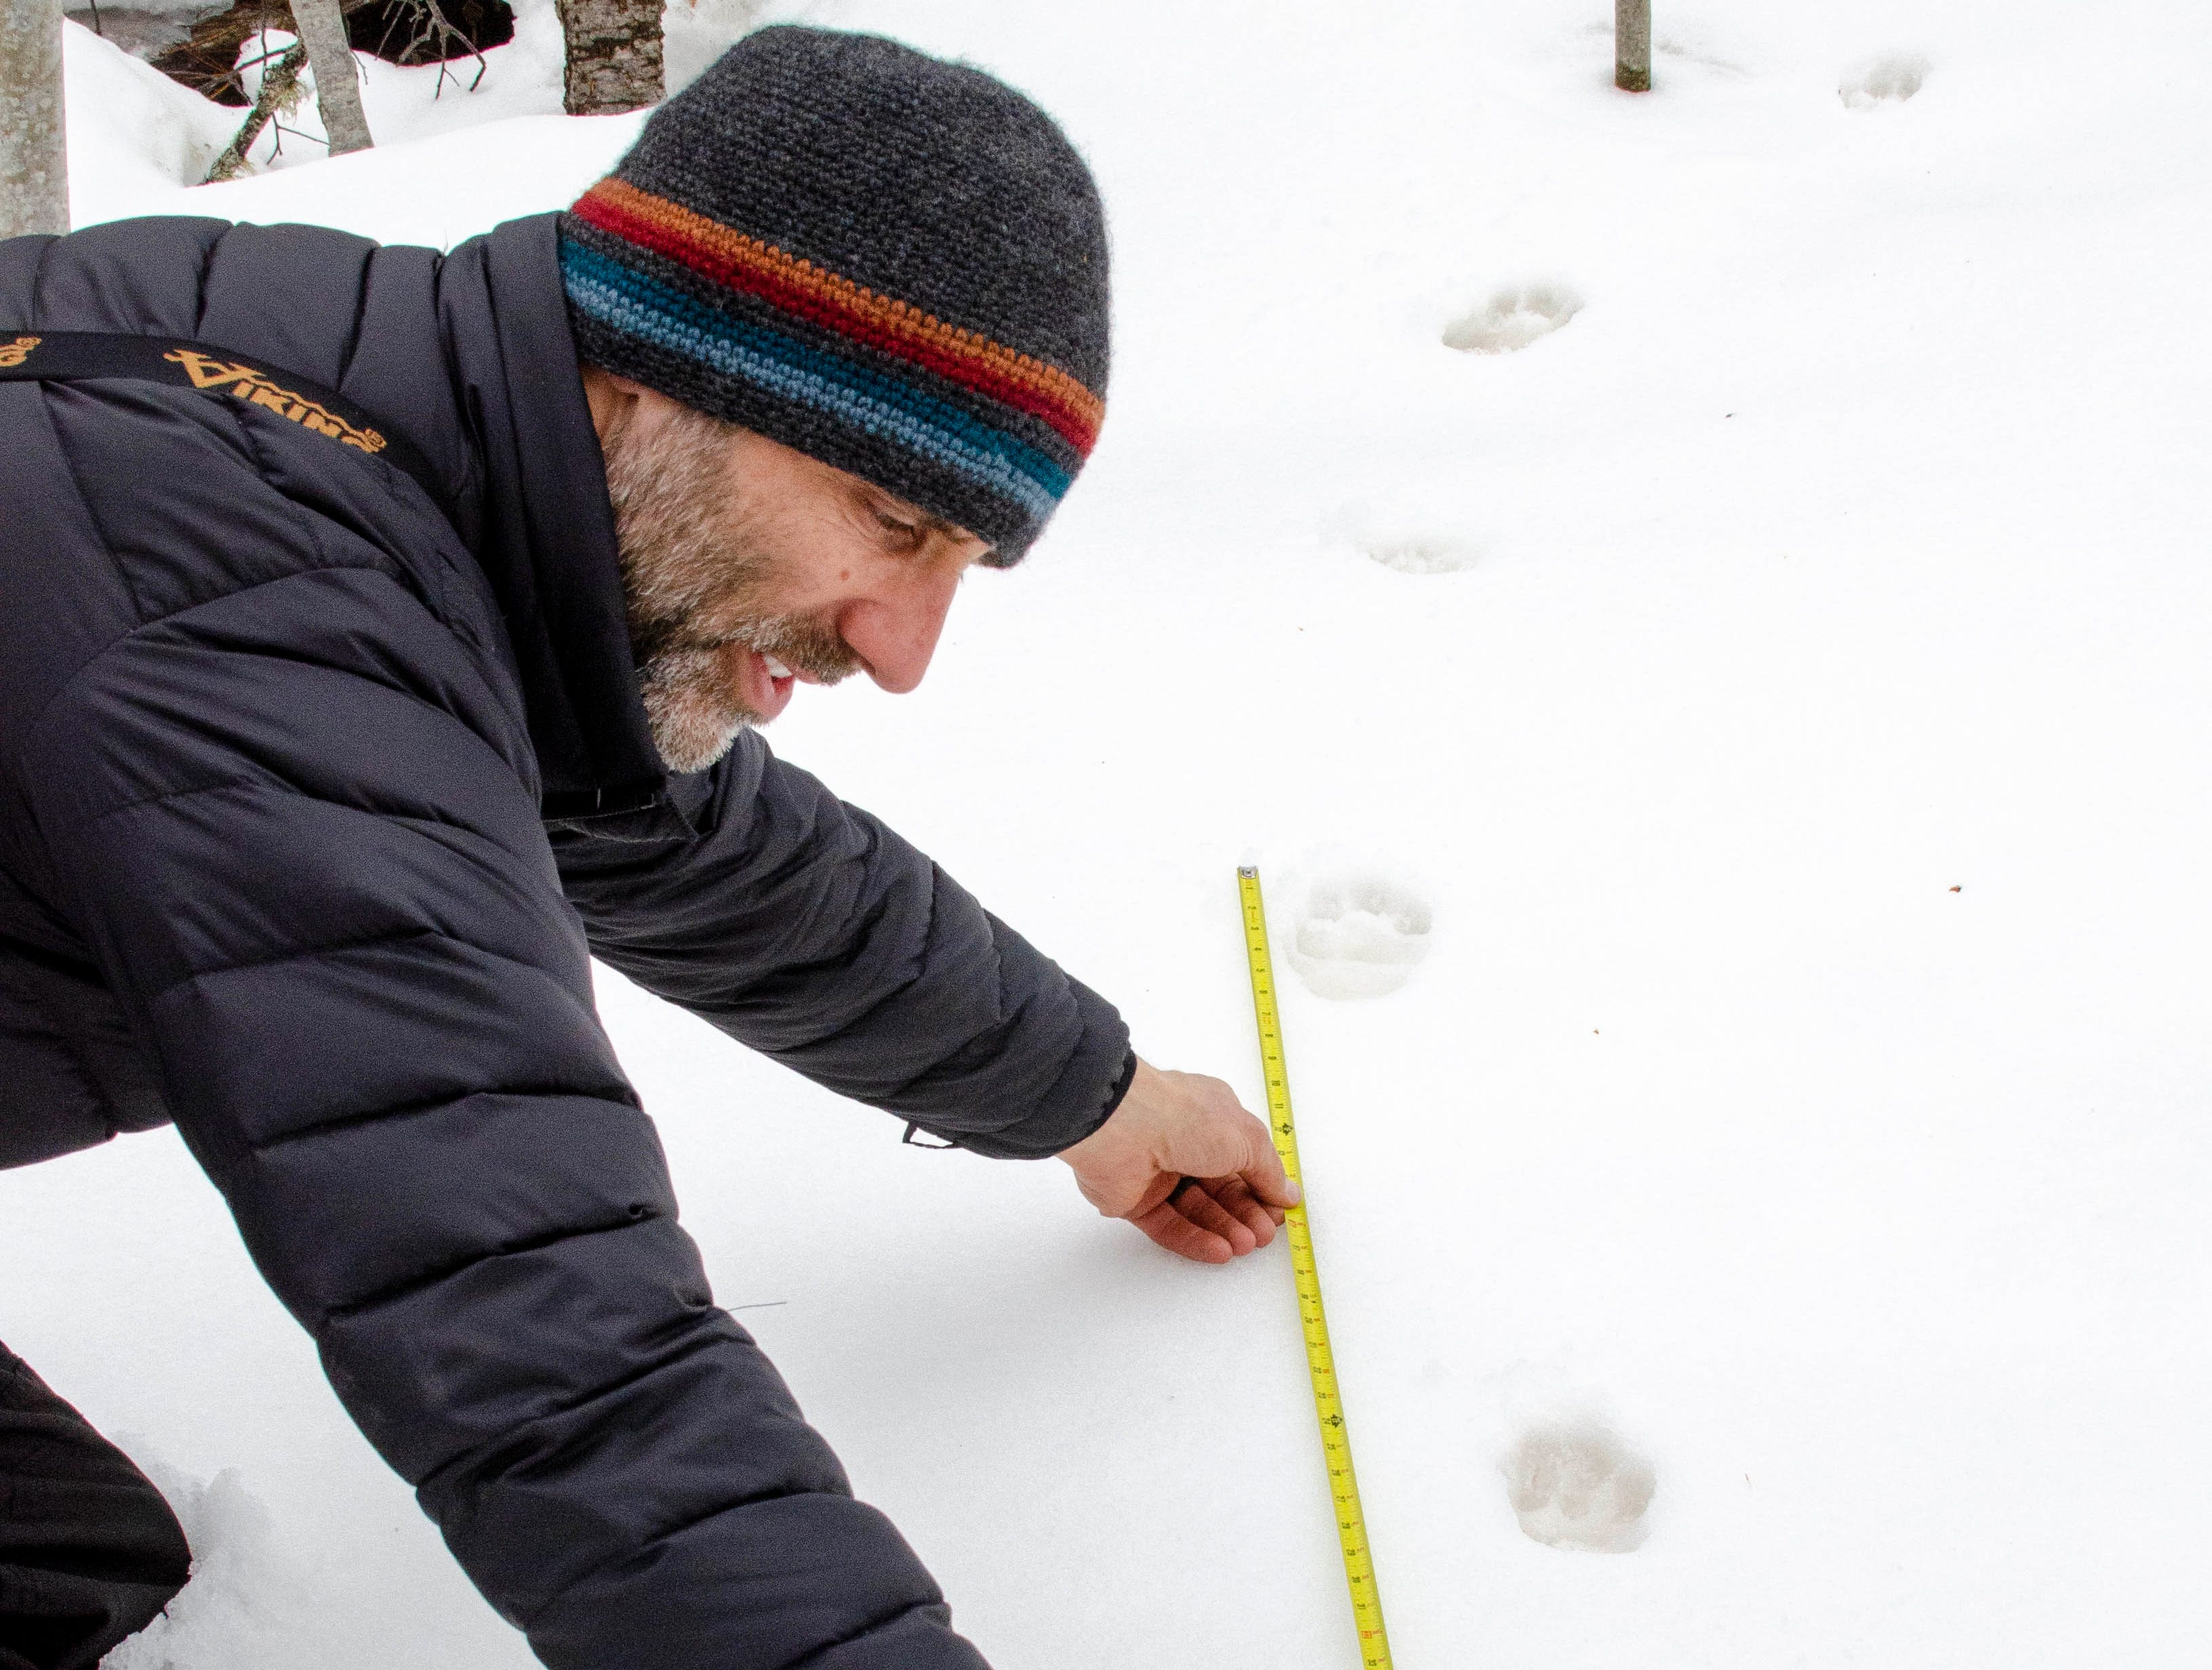 Michigan Department of Natural Resources wildlife biologist John DePue measures the stride of a female Canada lynx released in Schoolcraft County.